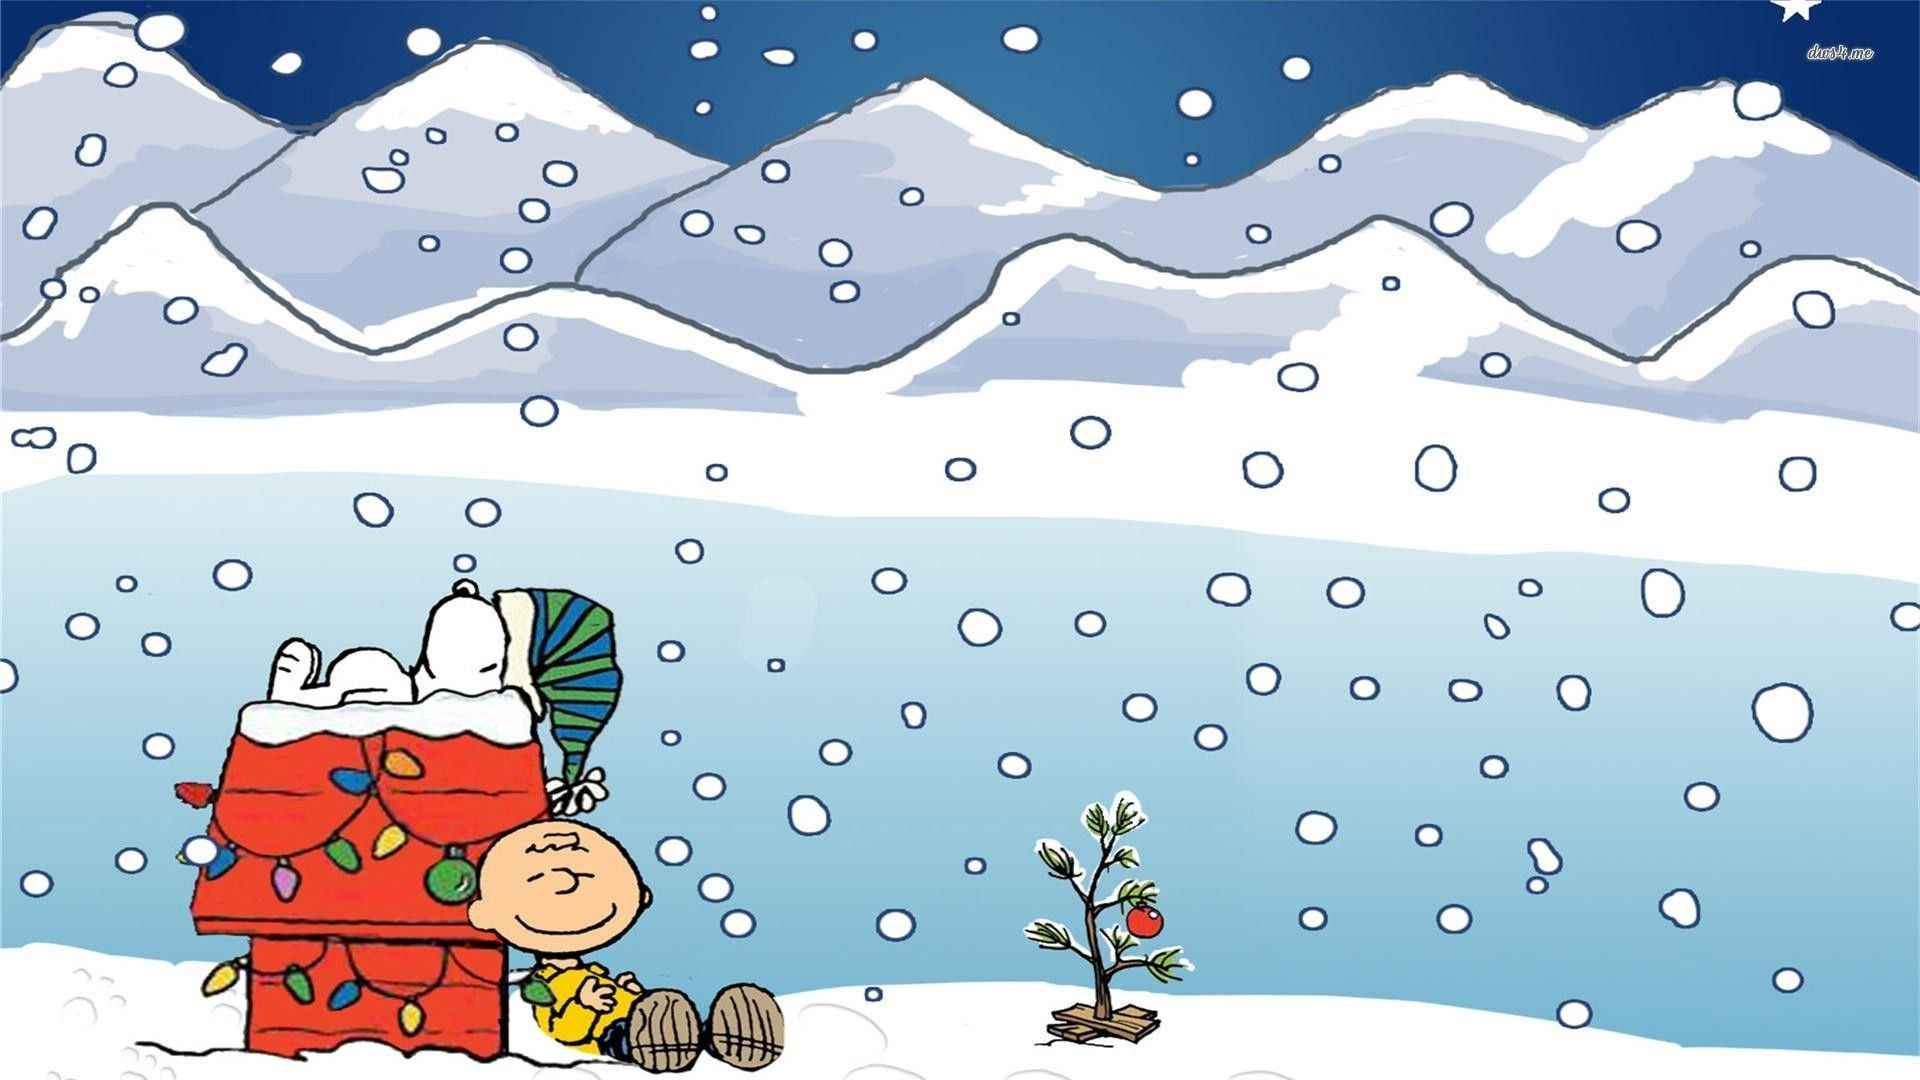 1920x1080 Charlie Brown and Snoopy wallpaper - Cartoon wallpapers - #12189